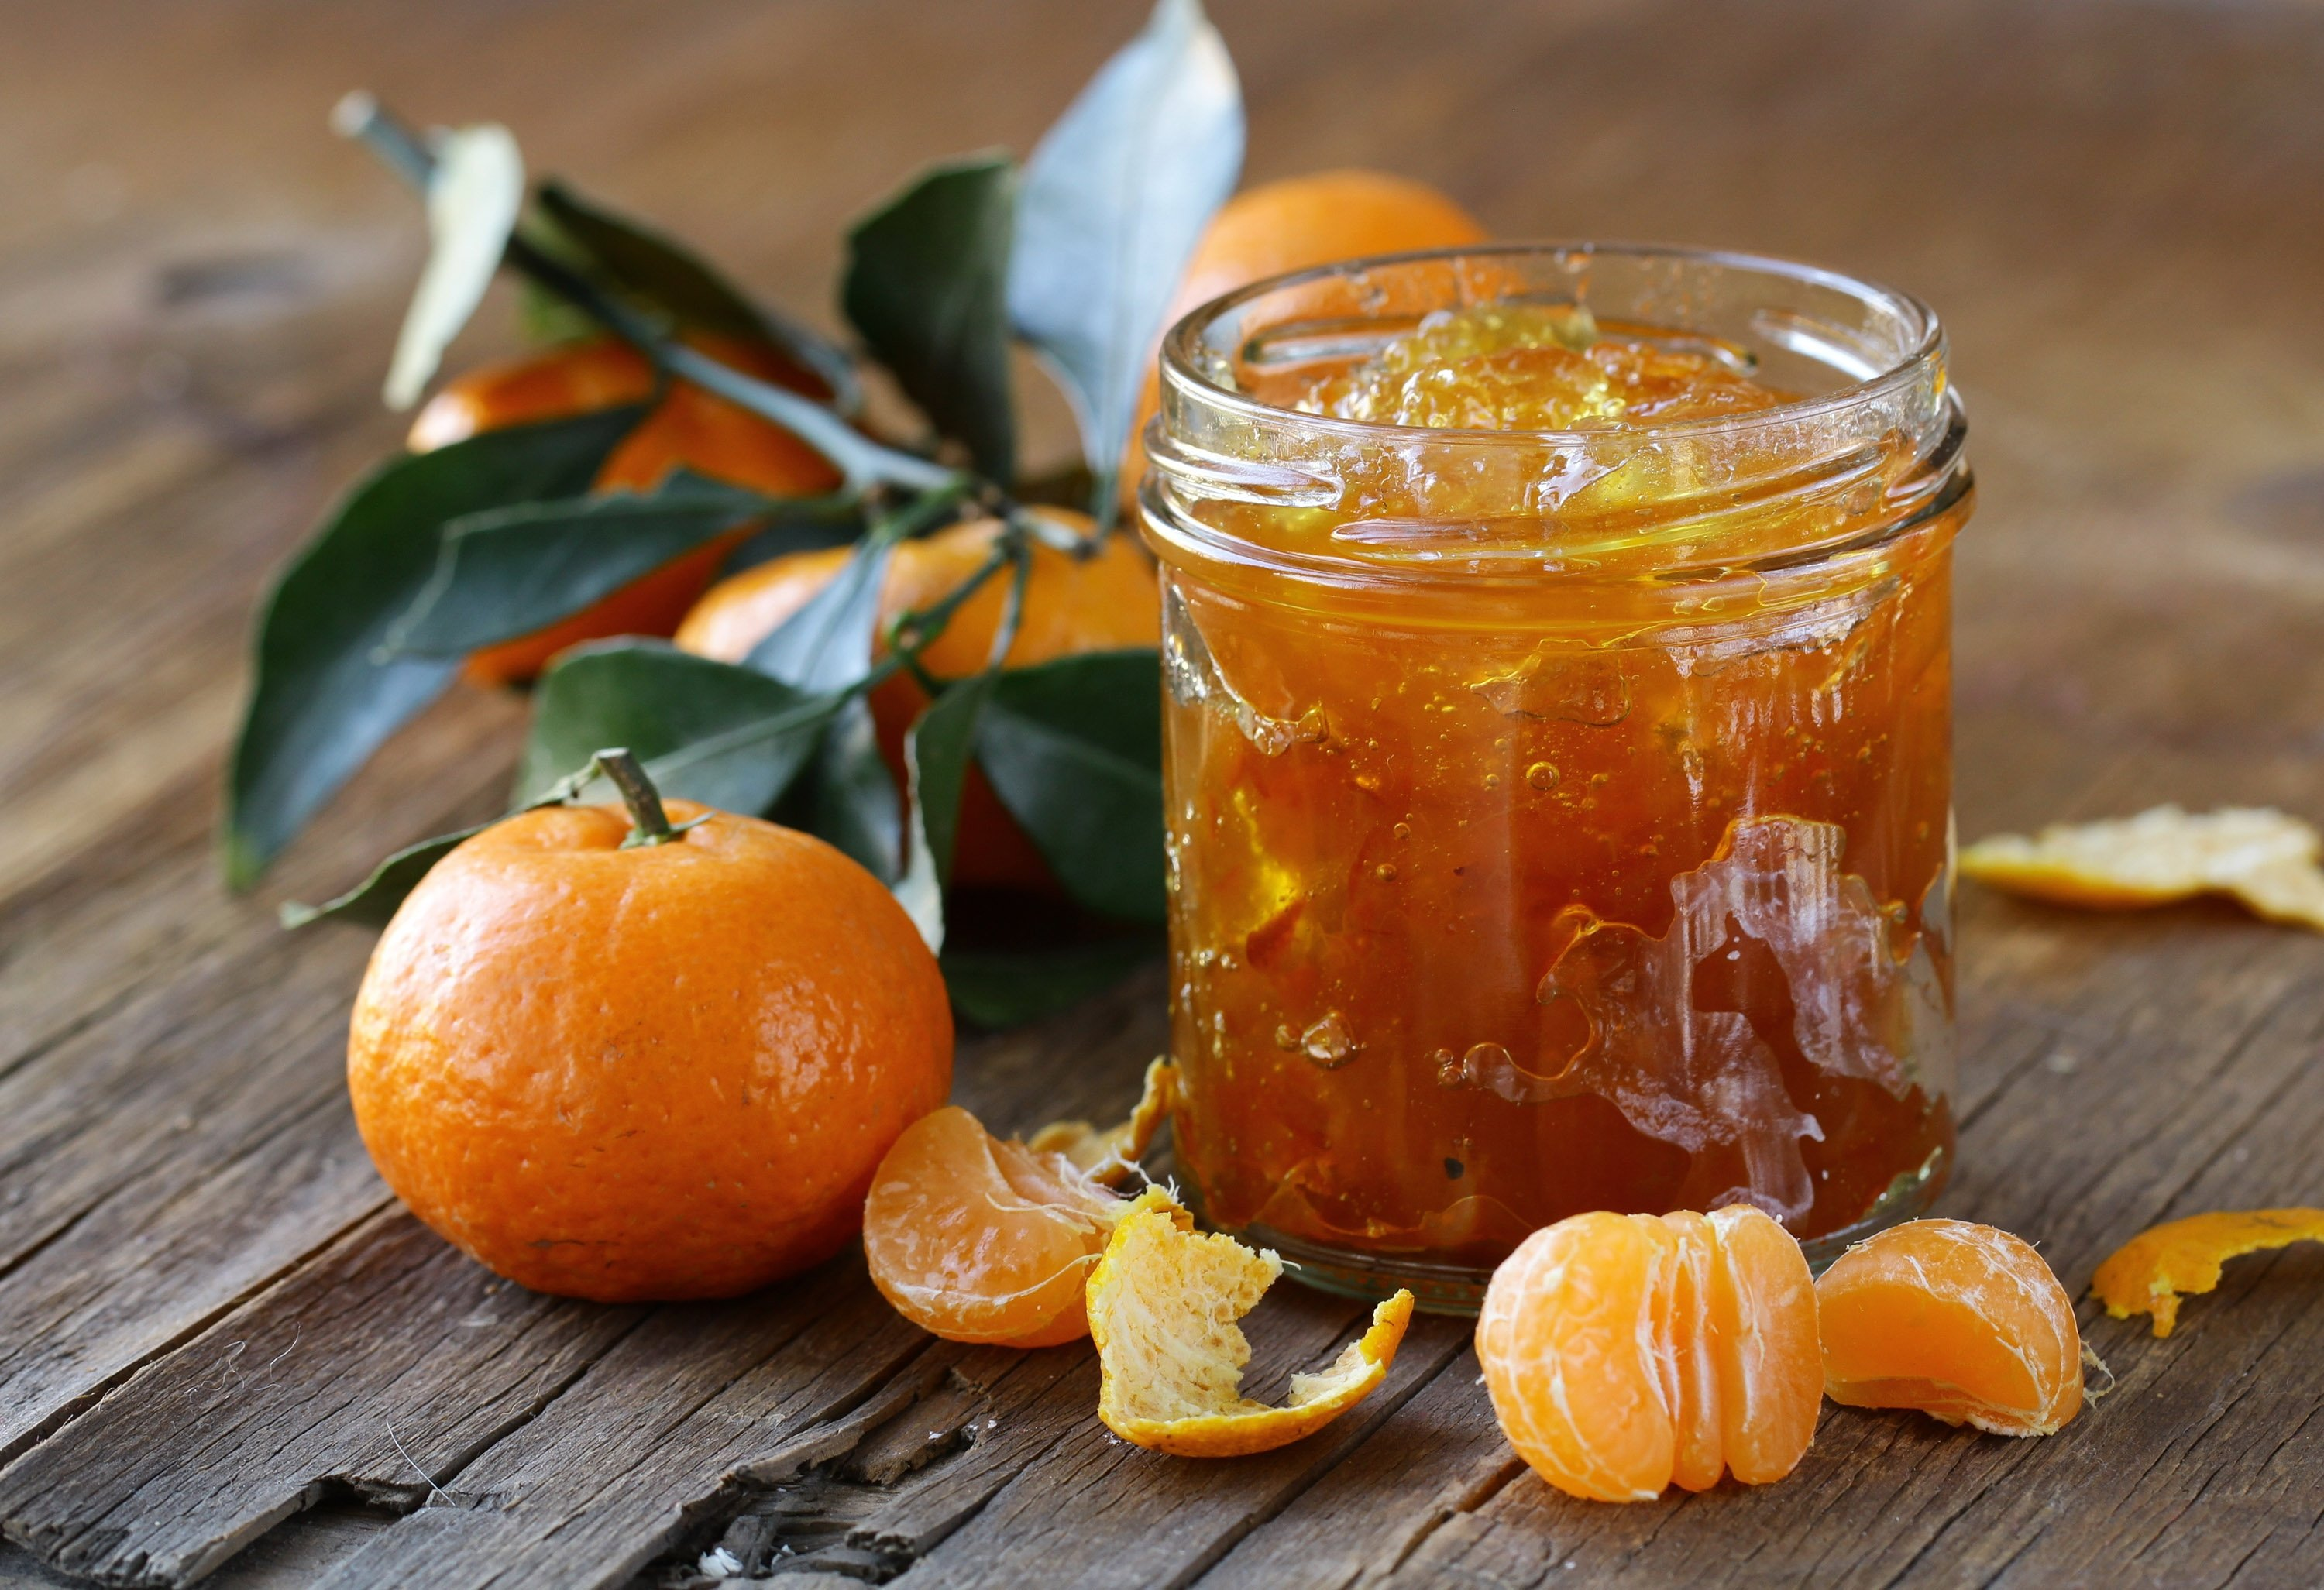 Mandarin jam is great on toast or used as filling between cake layers. (Shutterstock Photo)